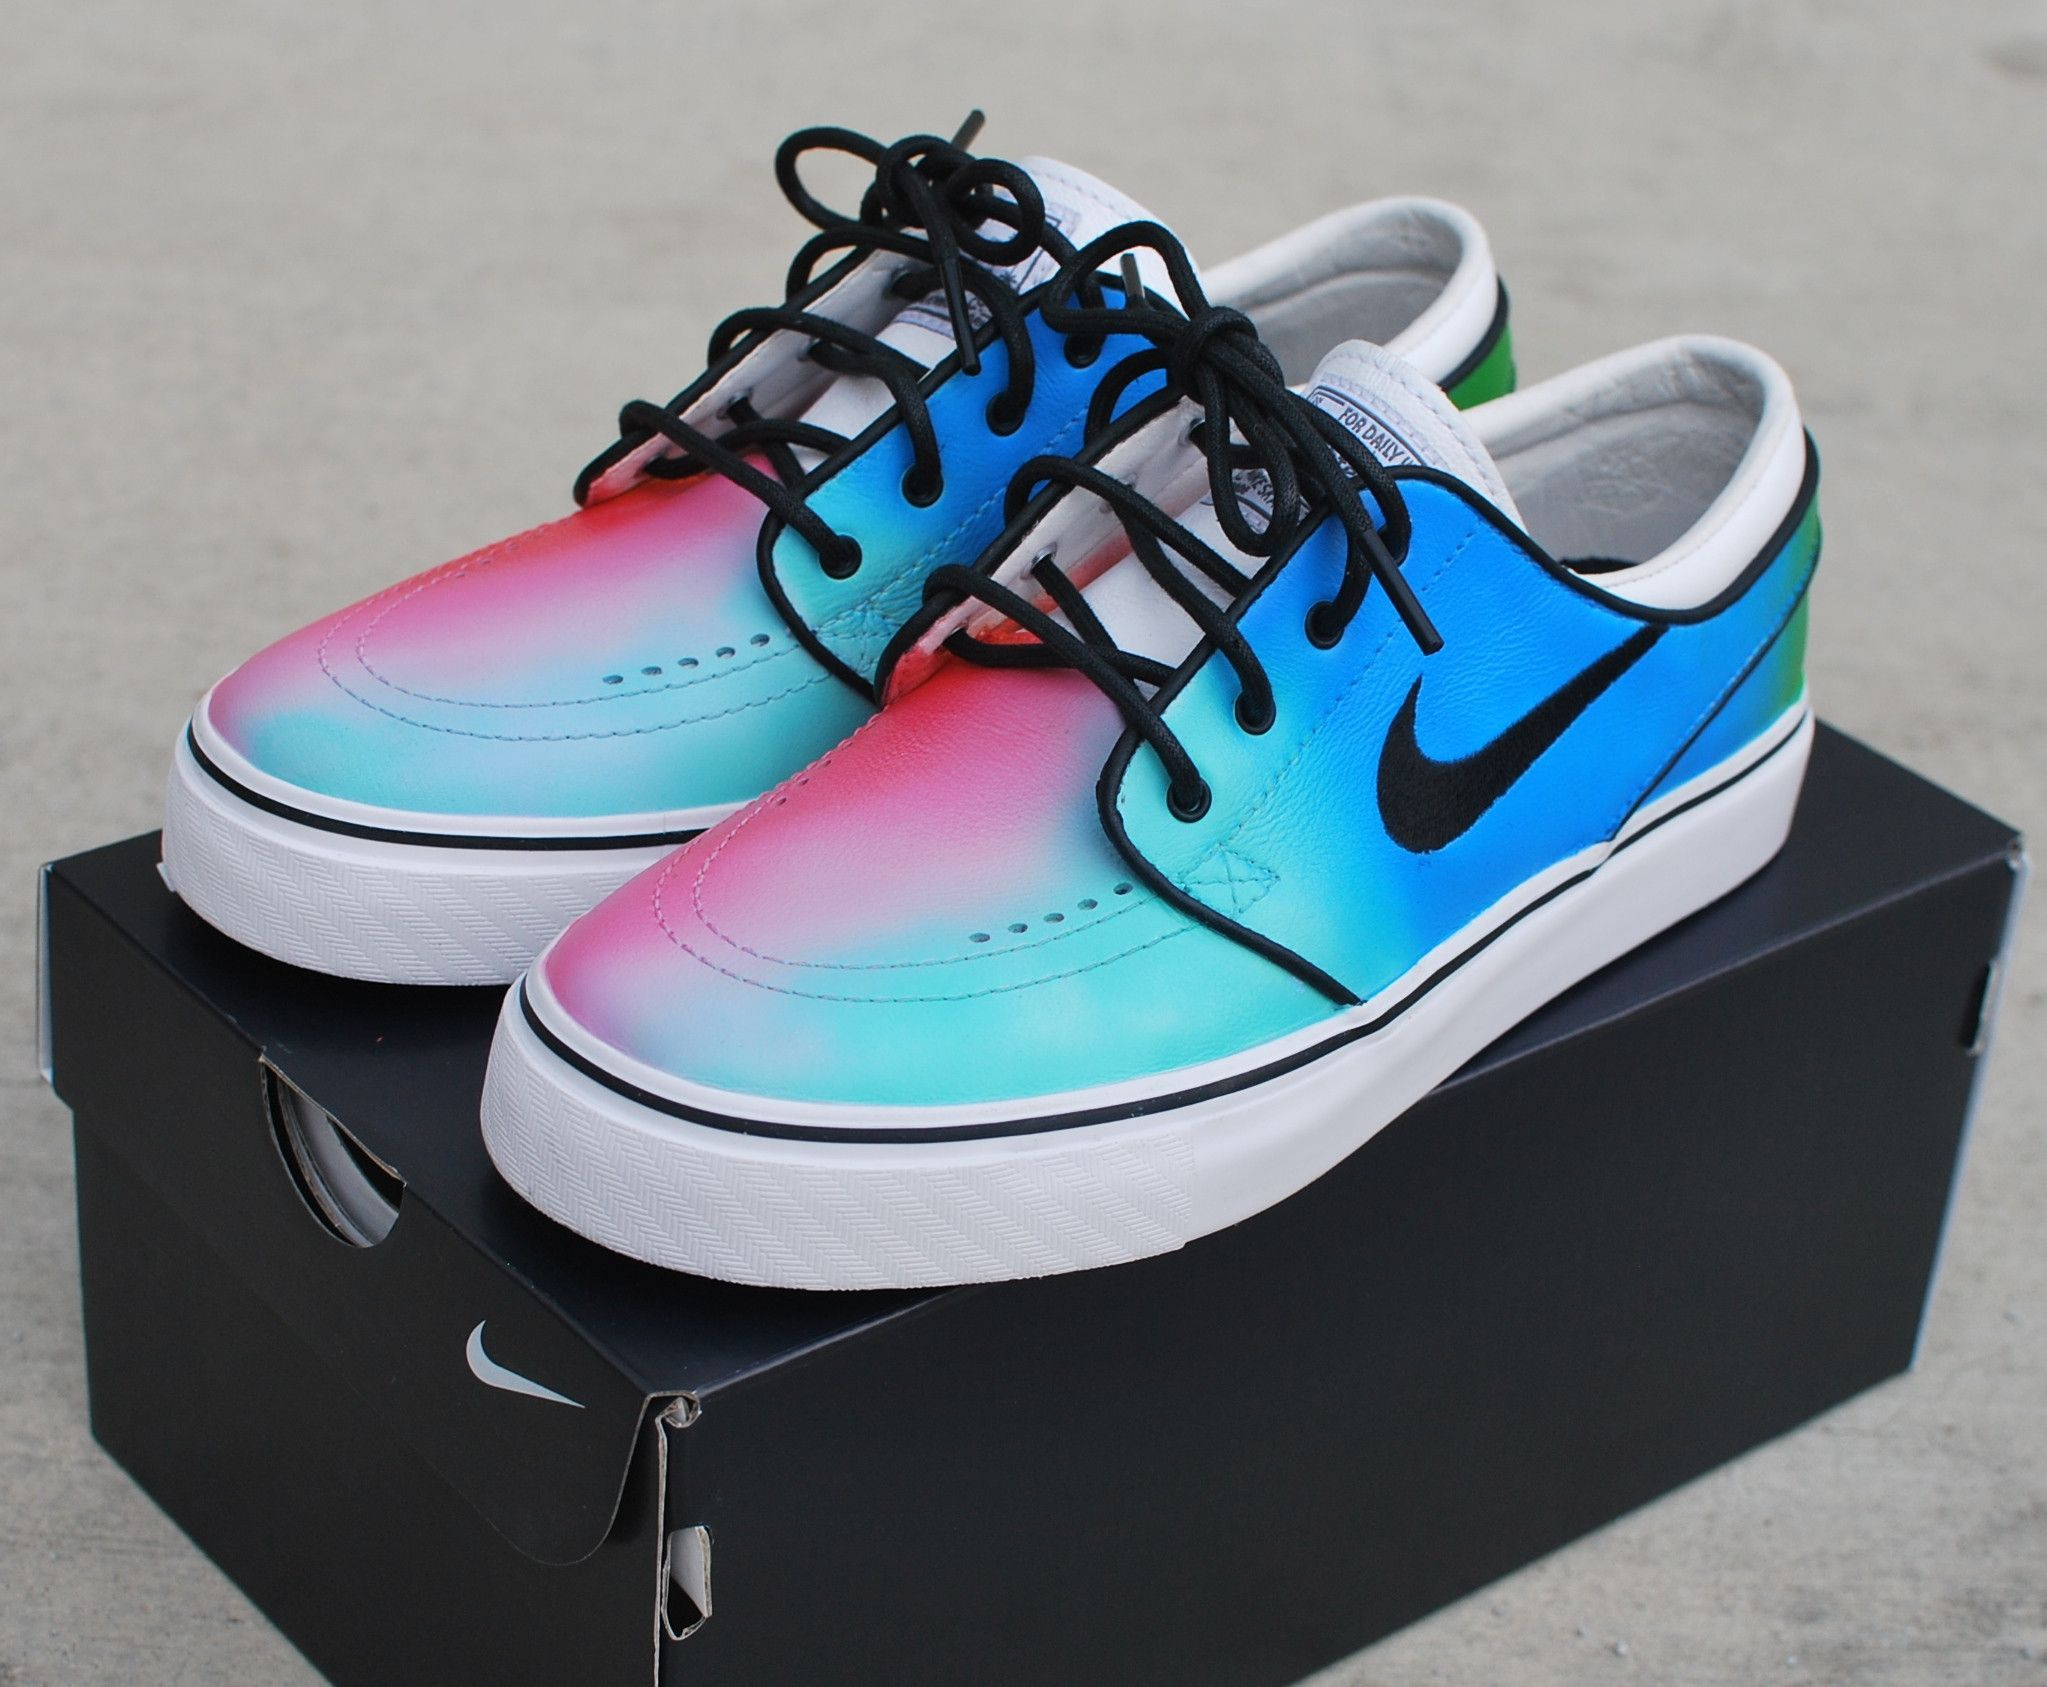 9660f20b6348 These Custom Nike Zoom Stefan Janoski skate shoes features my hand painted  Tie Dye design.